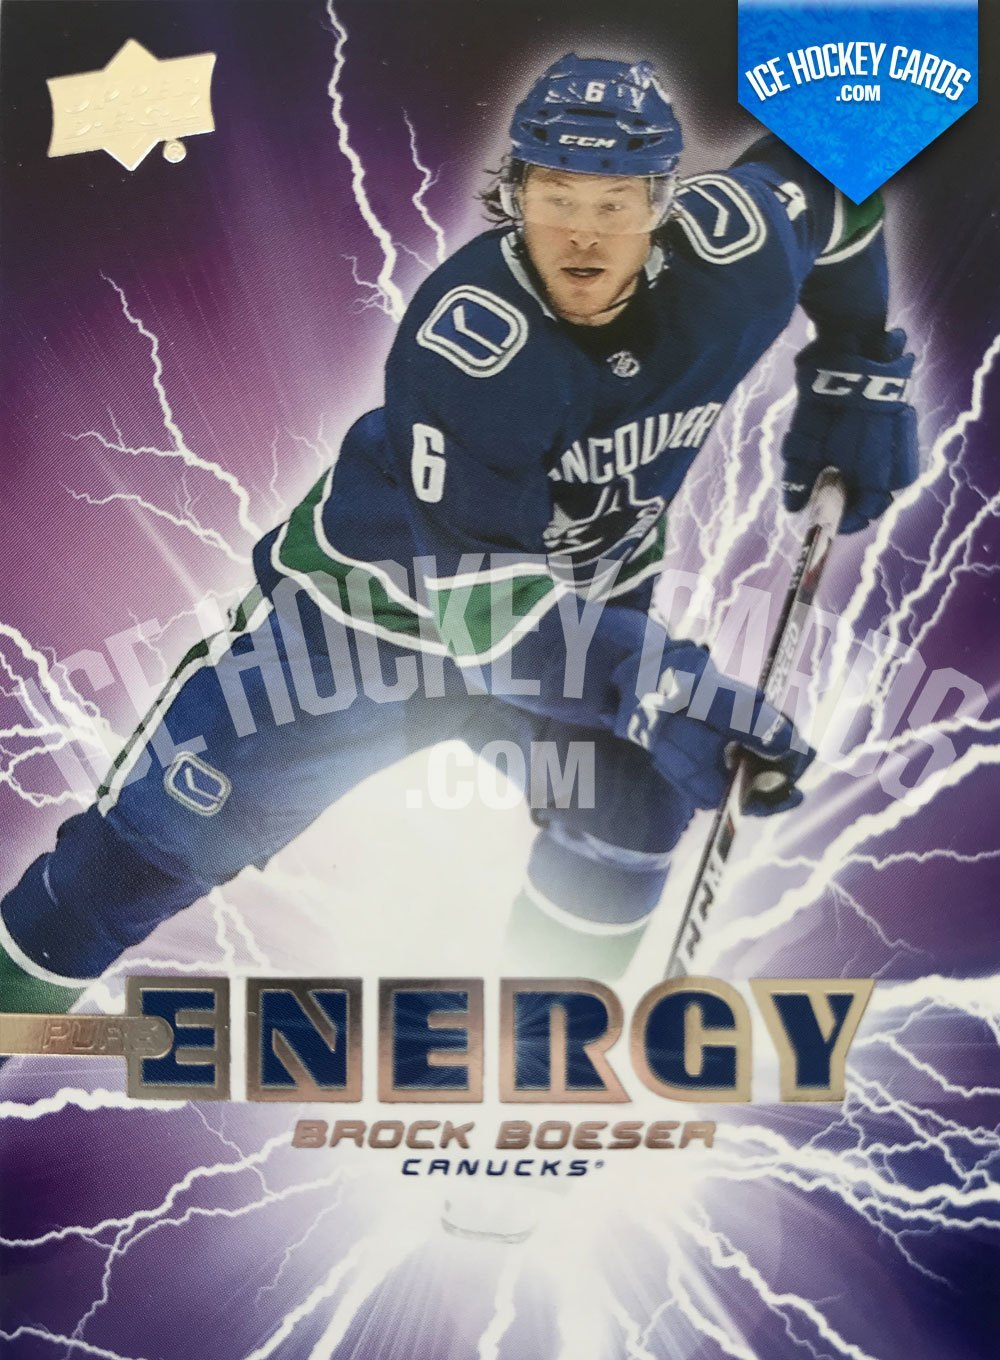 Upper Deck - 19-20 - Brock Boeser Pure Energy